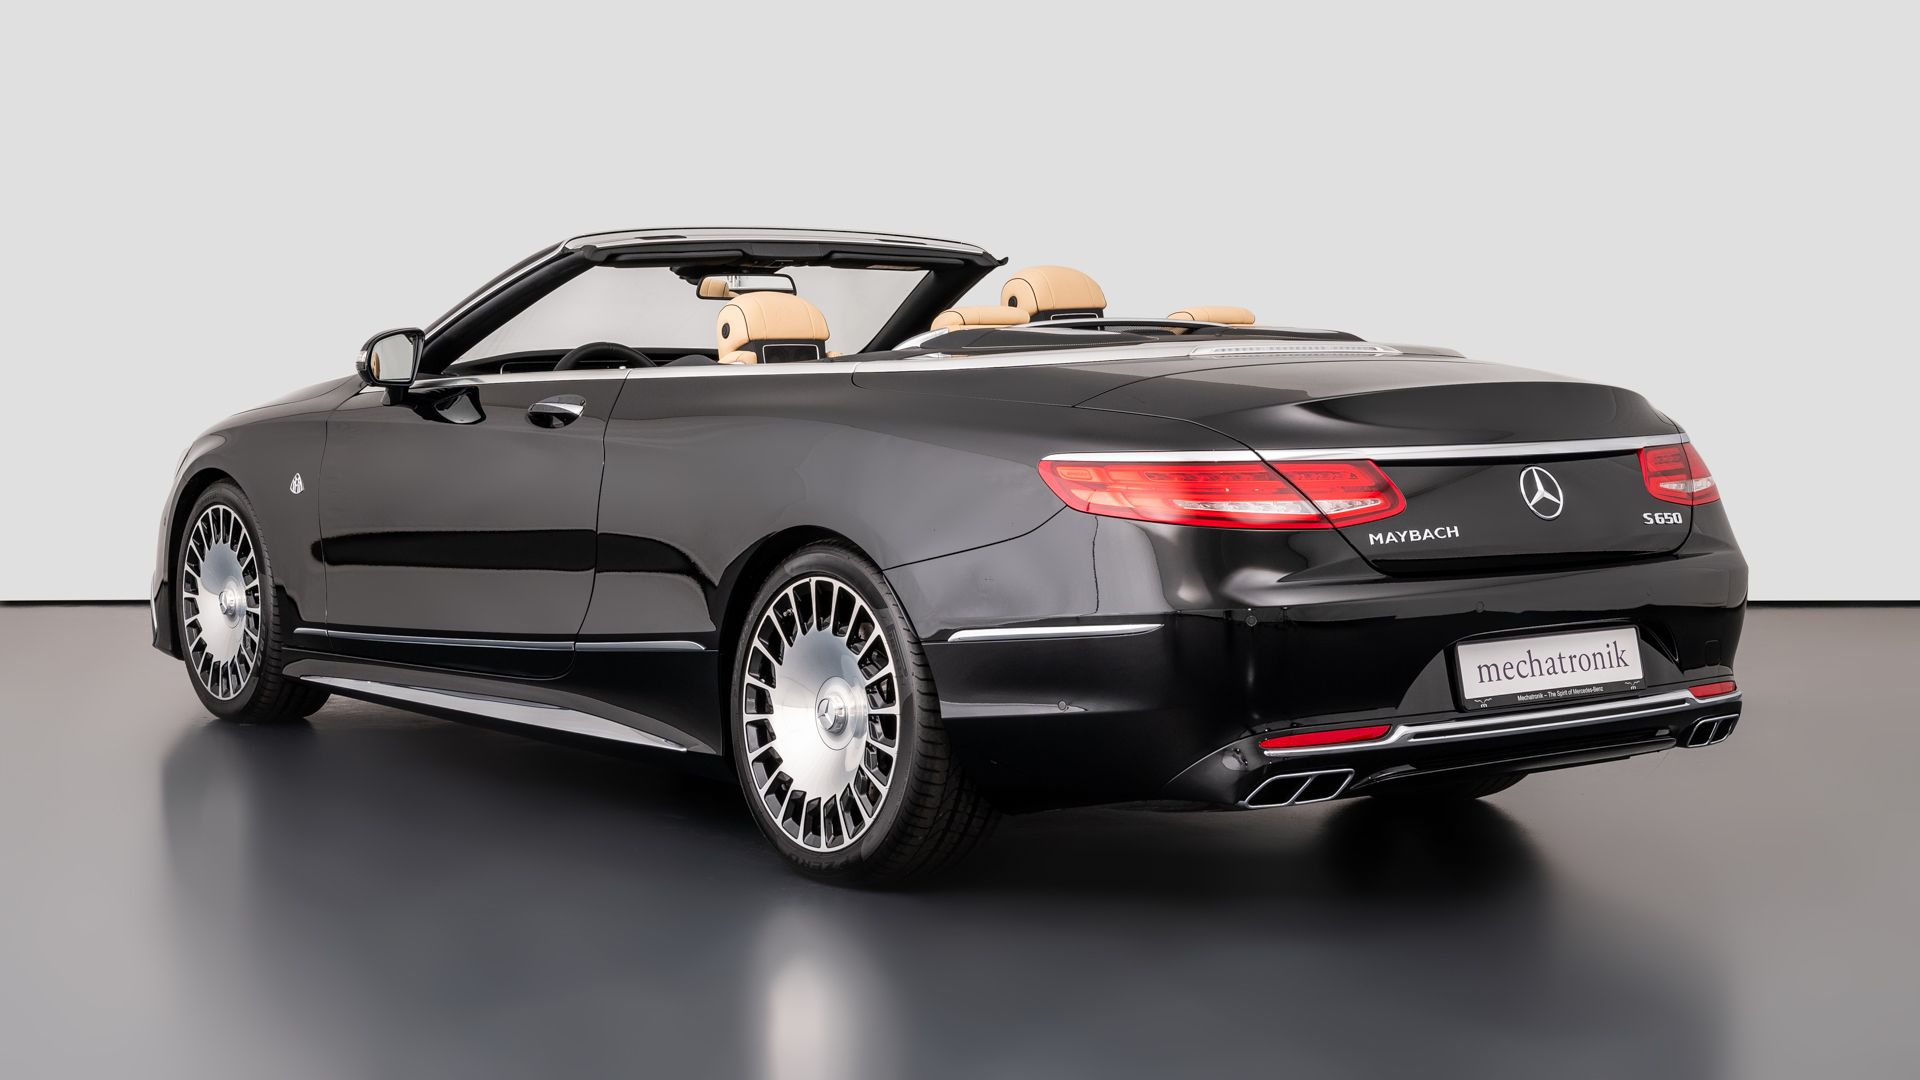 maybachs650cabriolet-cafeautovn-3